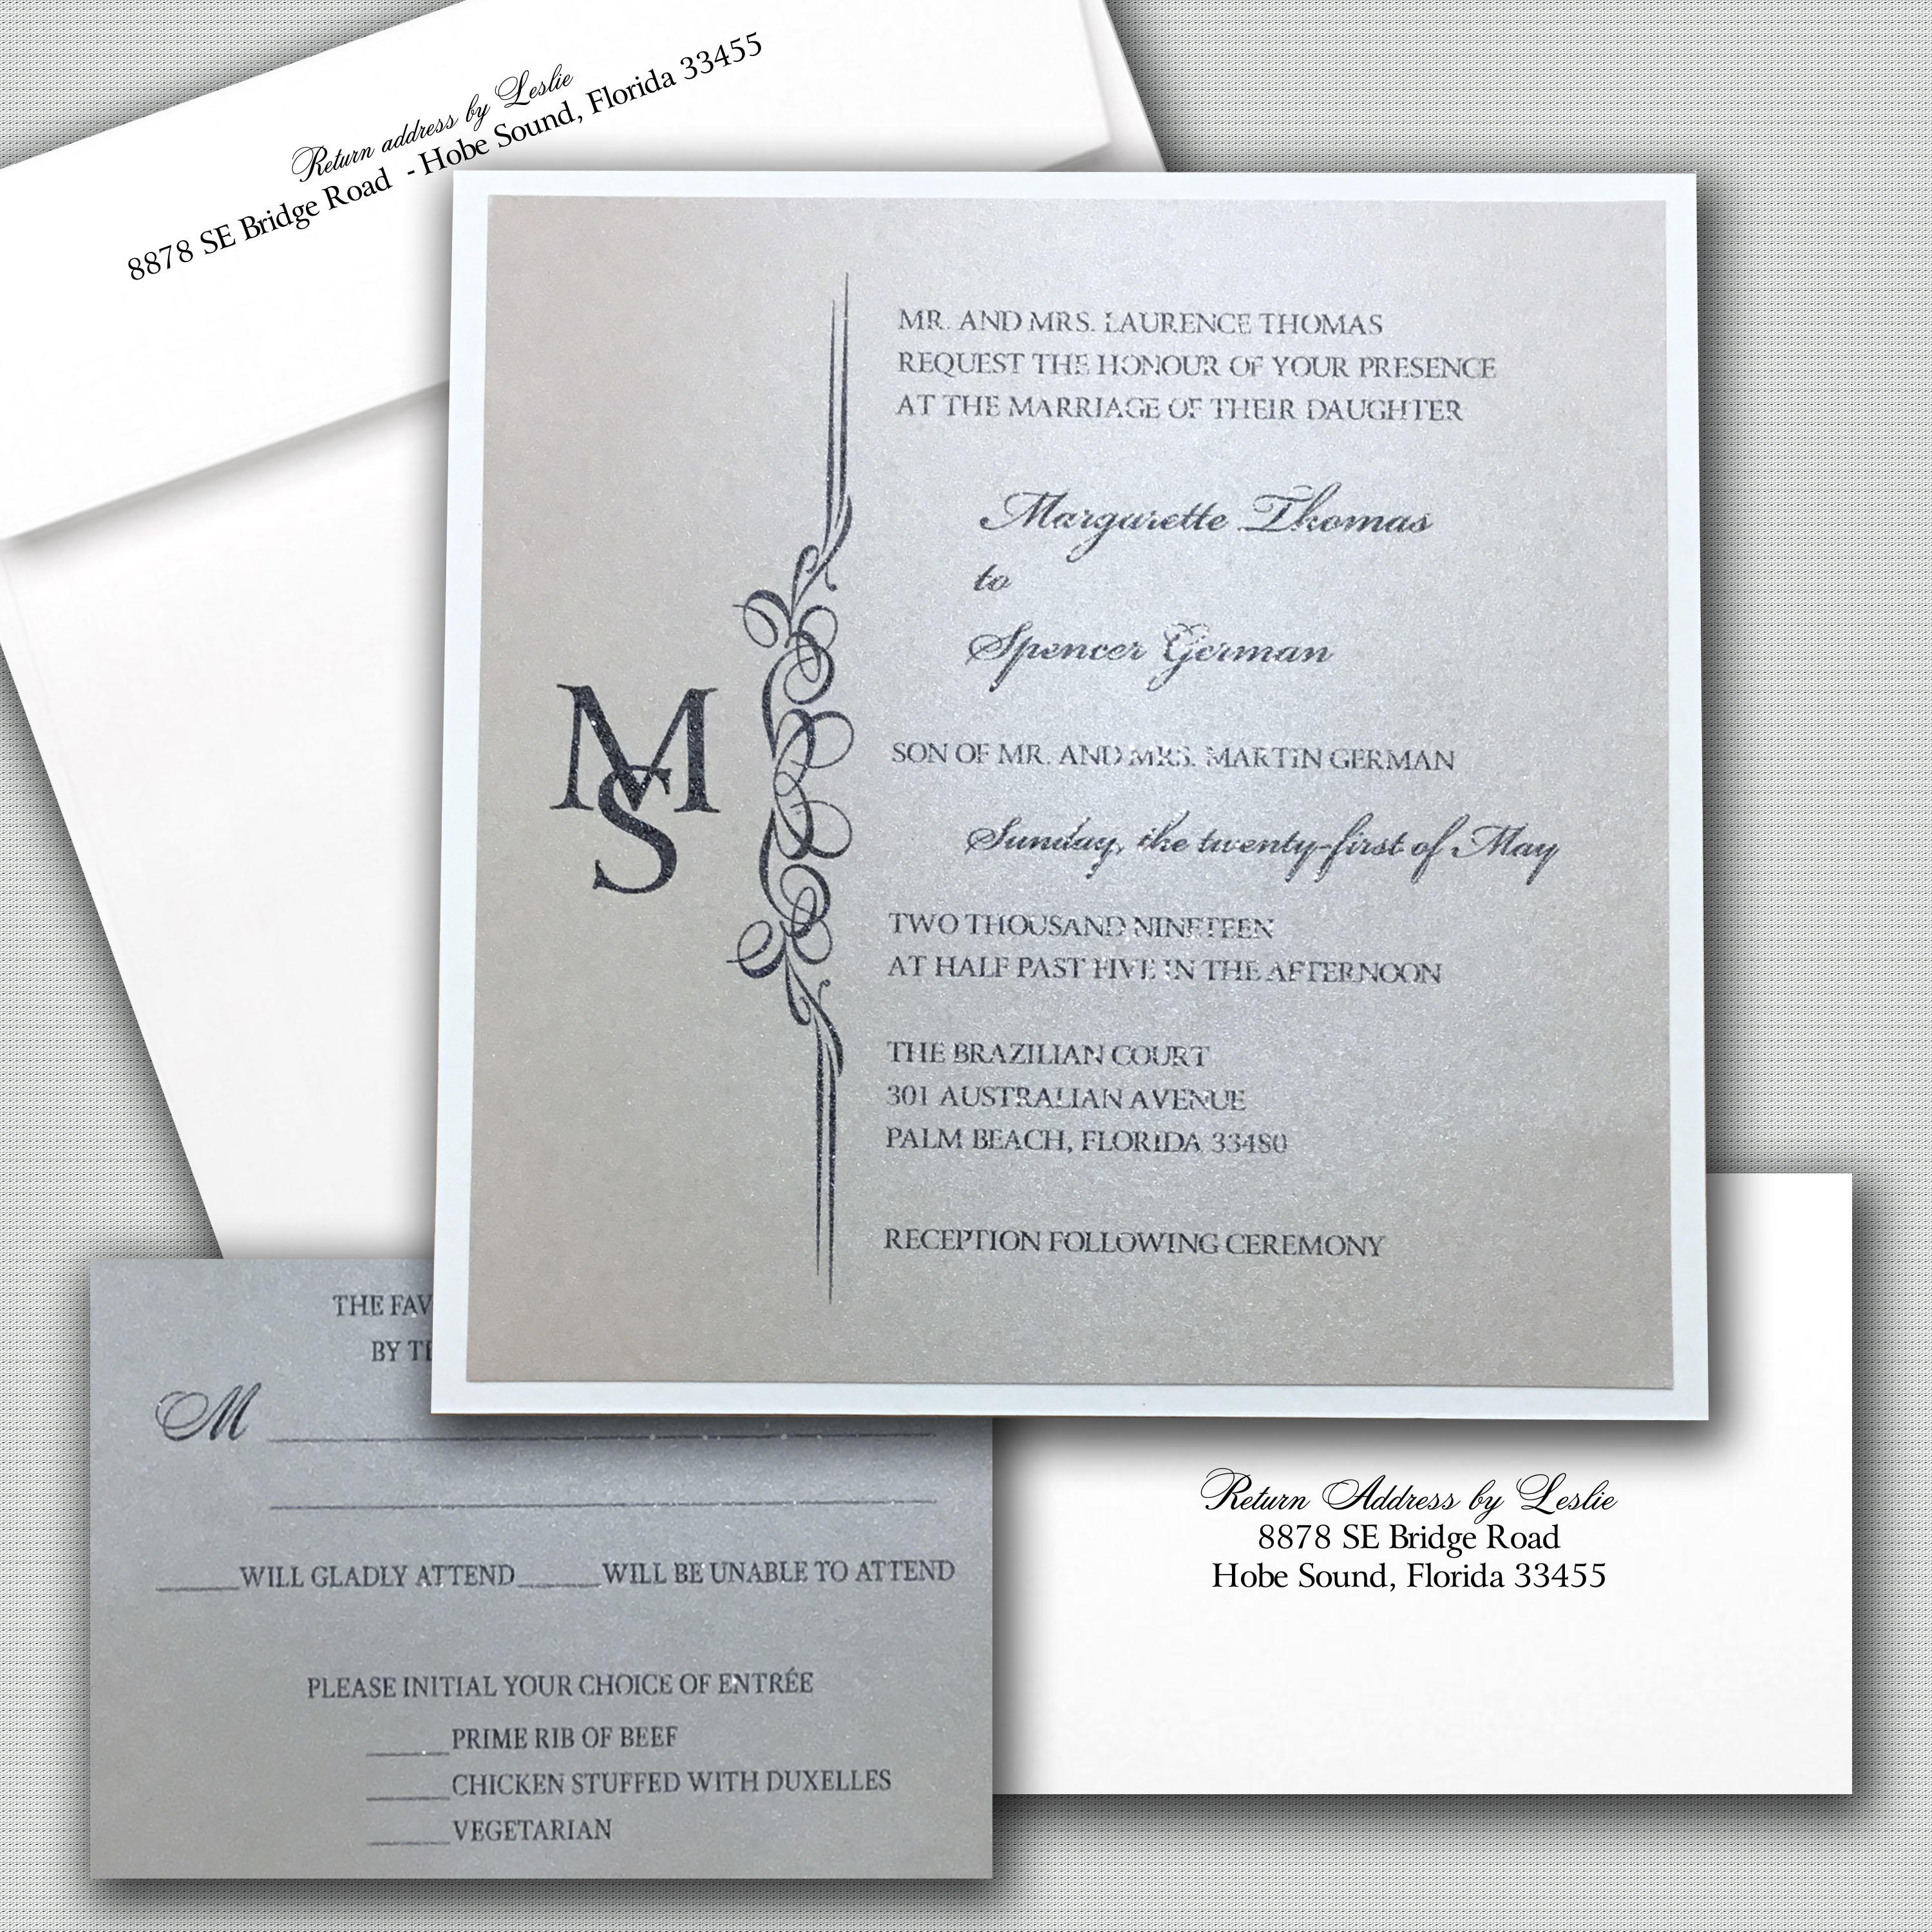 Leslie Store Wedding Invitations & Stationery image 2